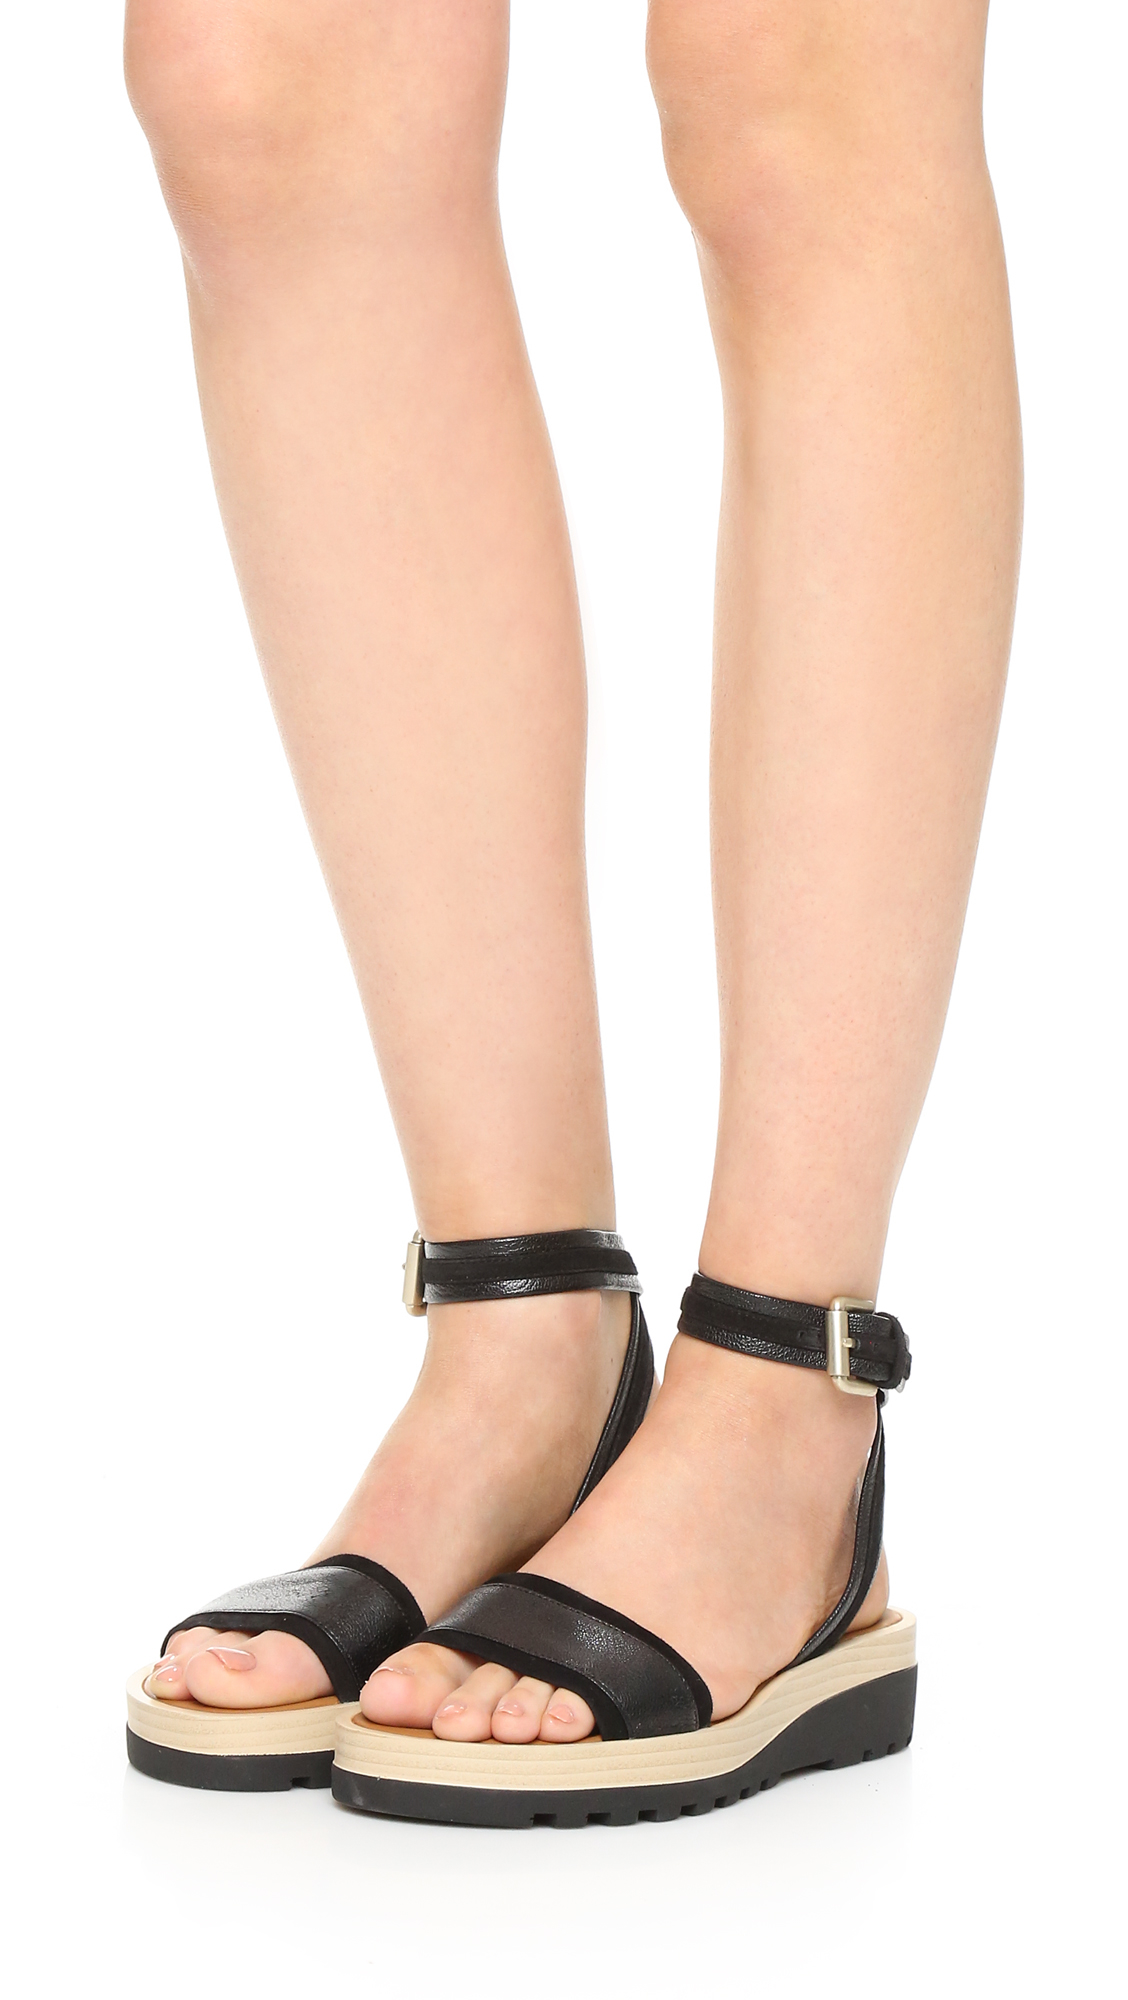 e2b73ed83272 Lyst - See By Chloé Robin Sandals in Black